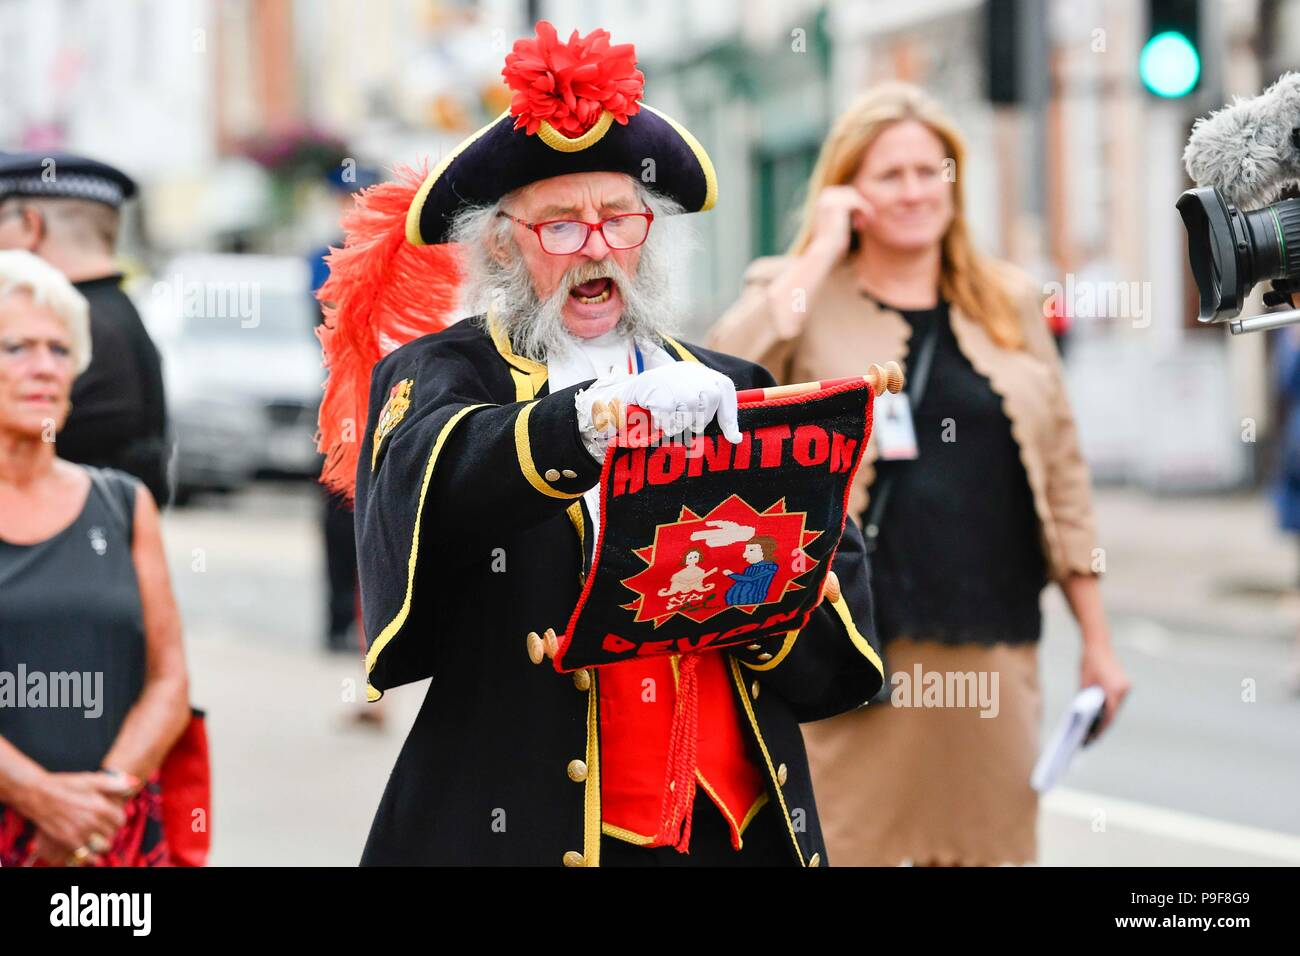 Honiton, Devon, UK.  18th July 2018.   The Duke and Duchess of Cornwall visit the Gate to Plate food market at Honiton in Devon.  Honiton town crier Dave Retter gives a rousing welcome cry.  Picture Credit: Graham Hunt/Alamy Live News Stock Photo